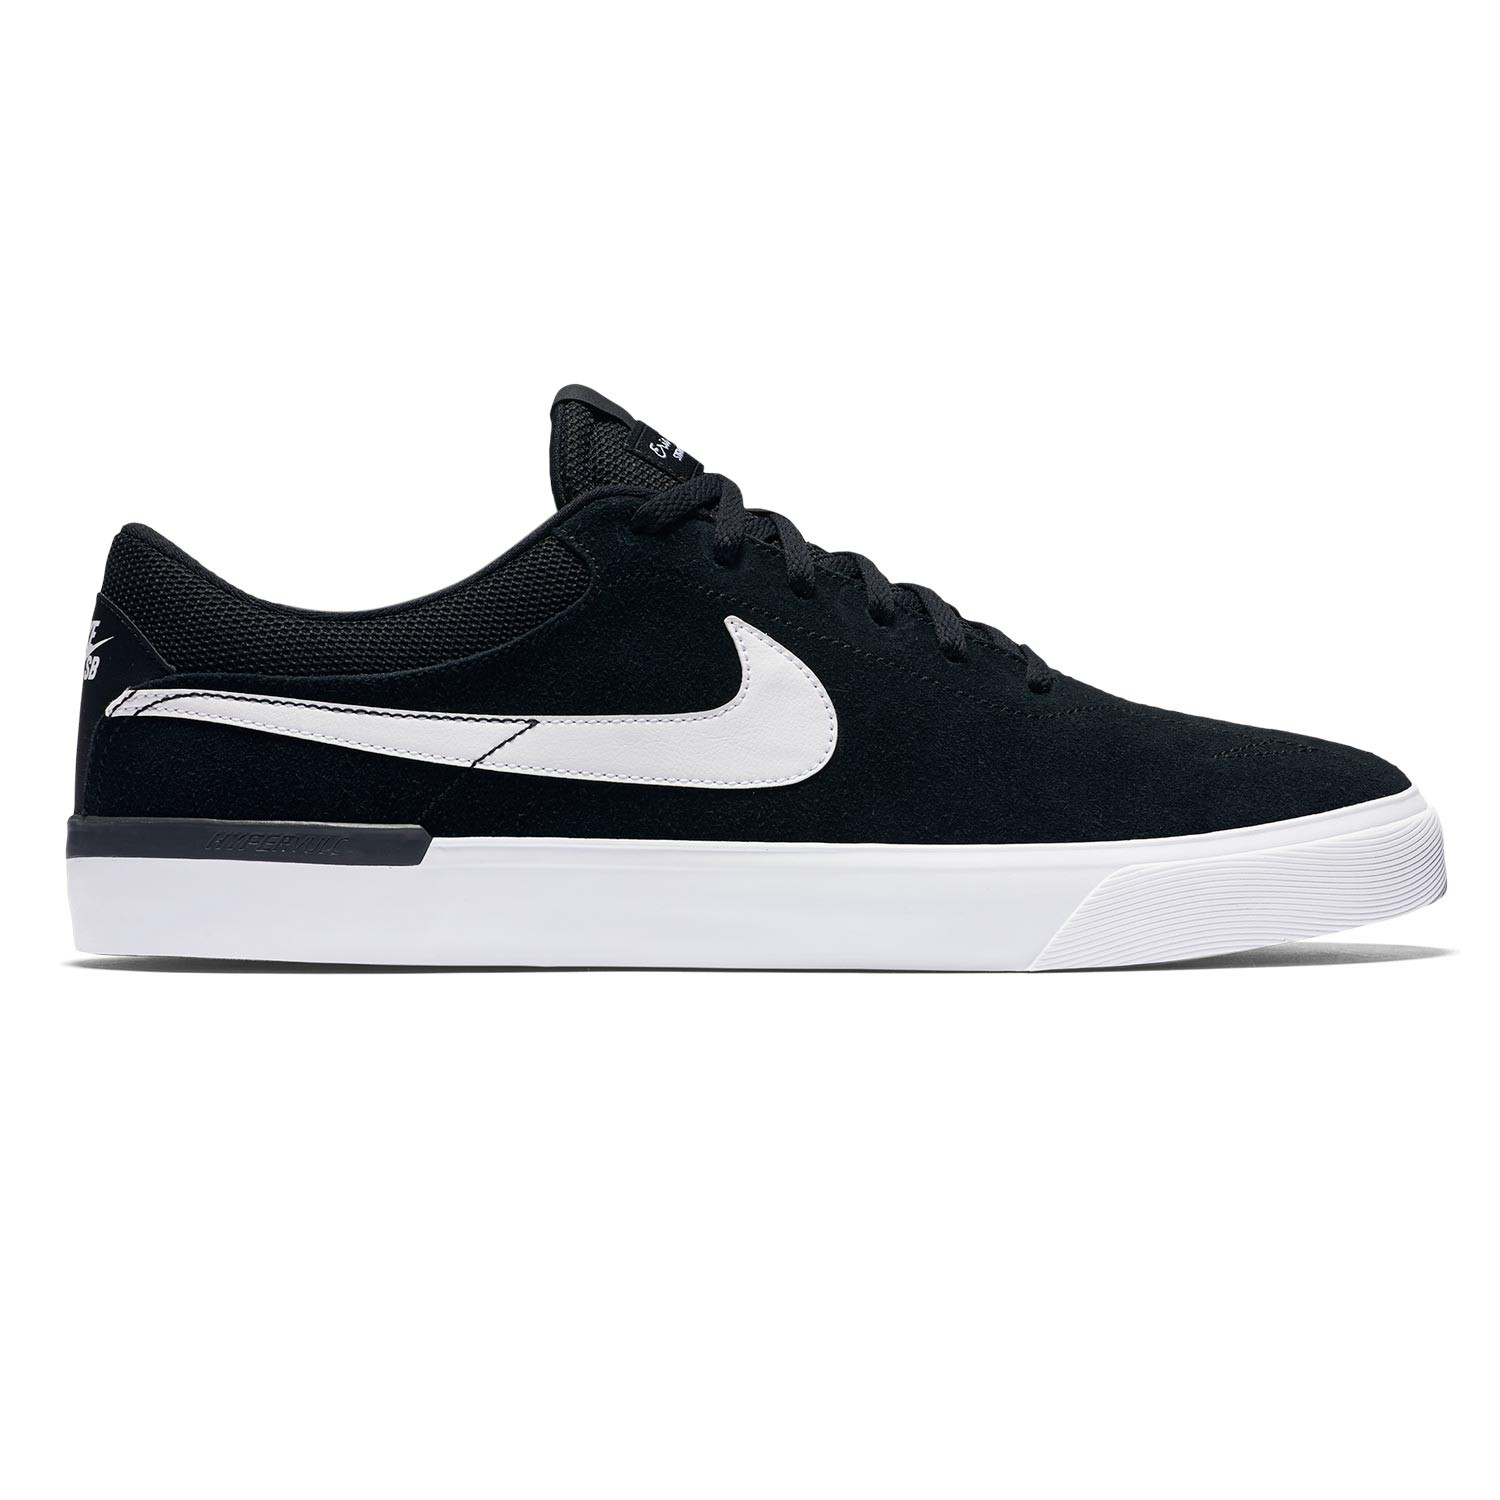 Tenisky Nike SB Koston Hypervulc black/white-dark grey